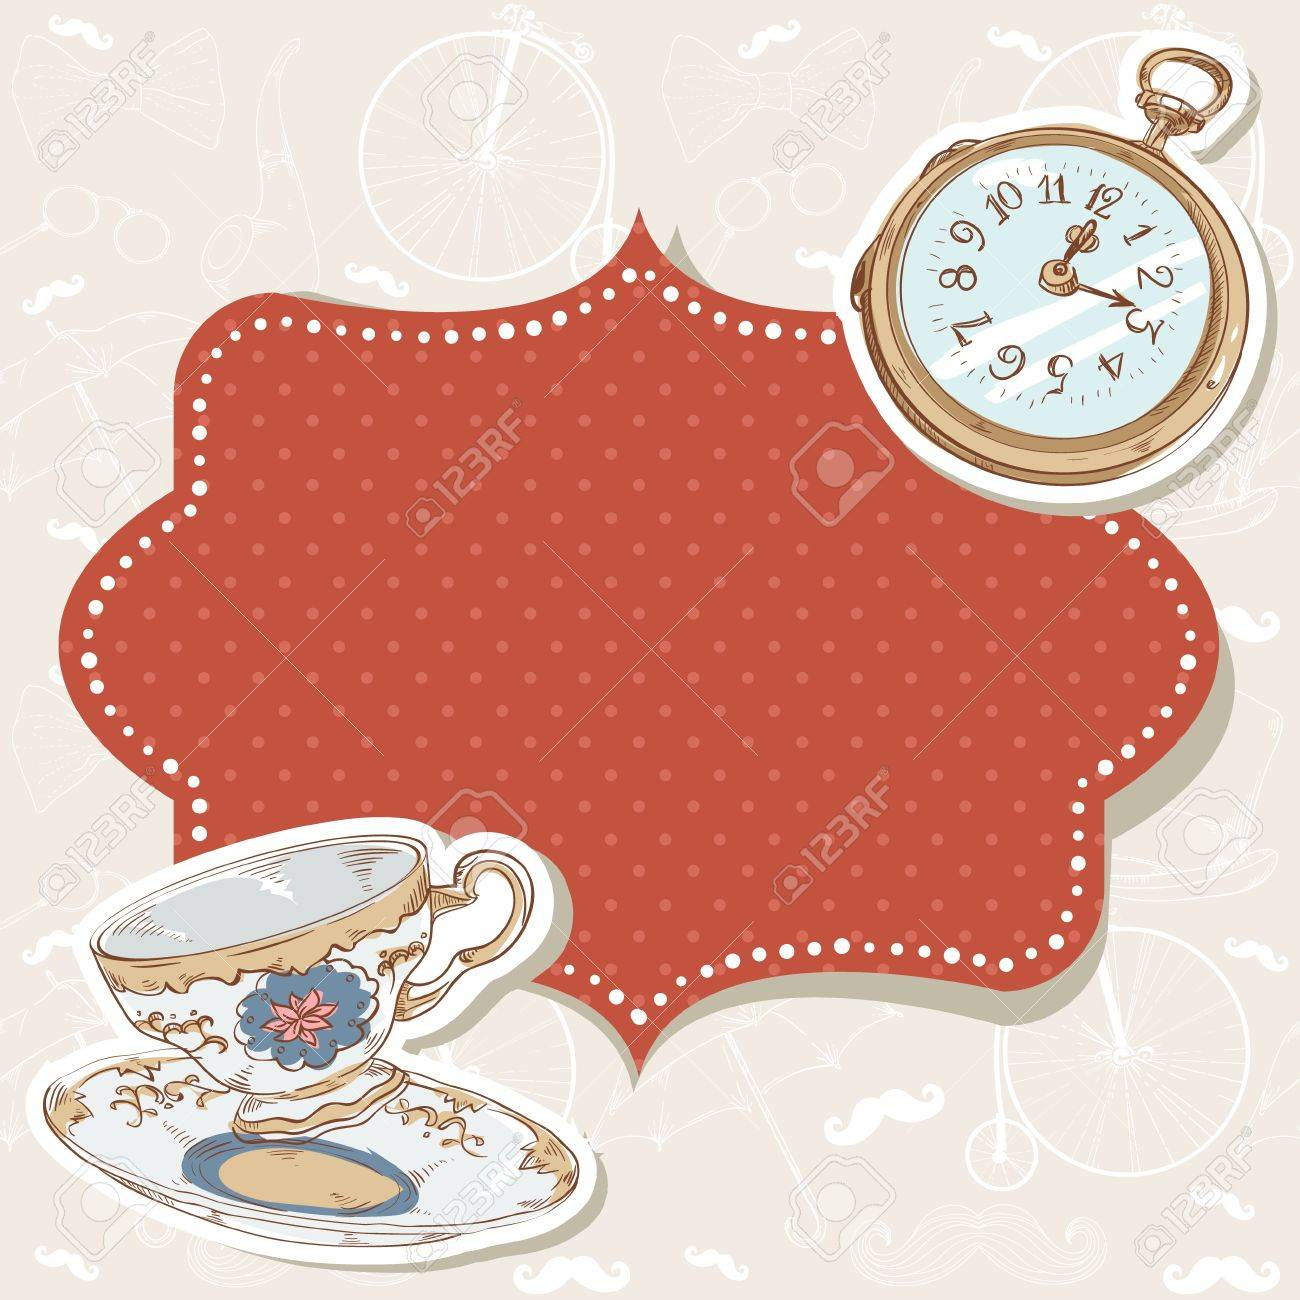 Romantic vintage invitation postcard with polka dot sticker, clock and cup on retro background Stock Vector - 17438000